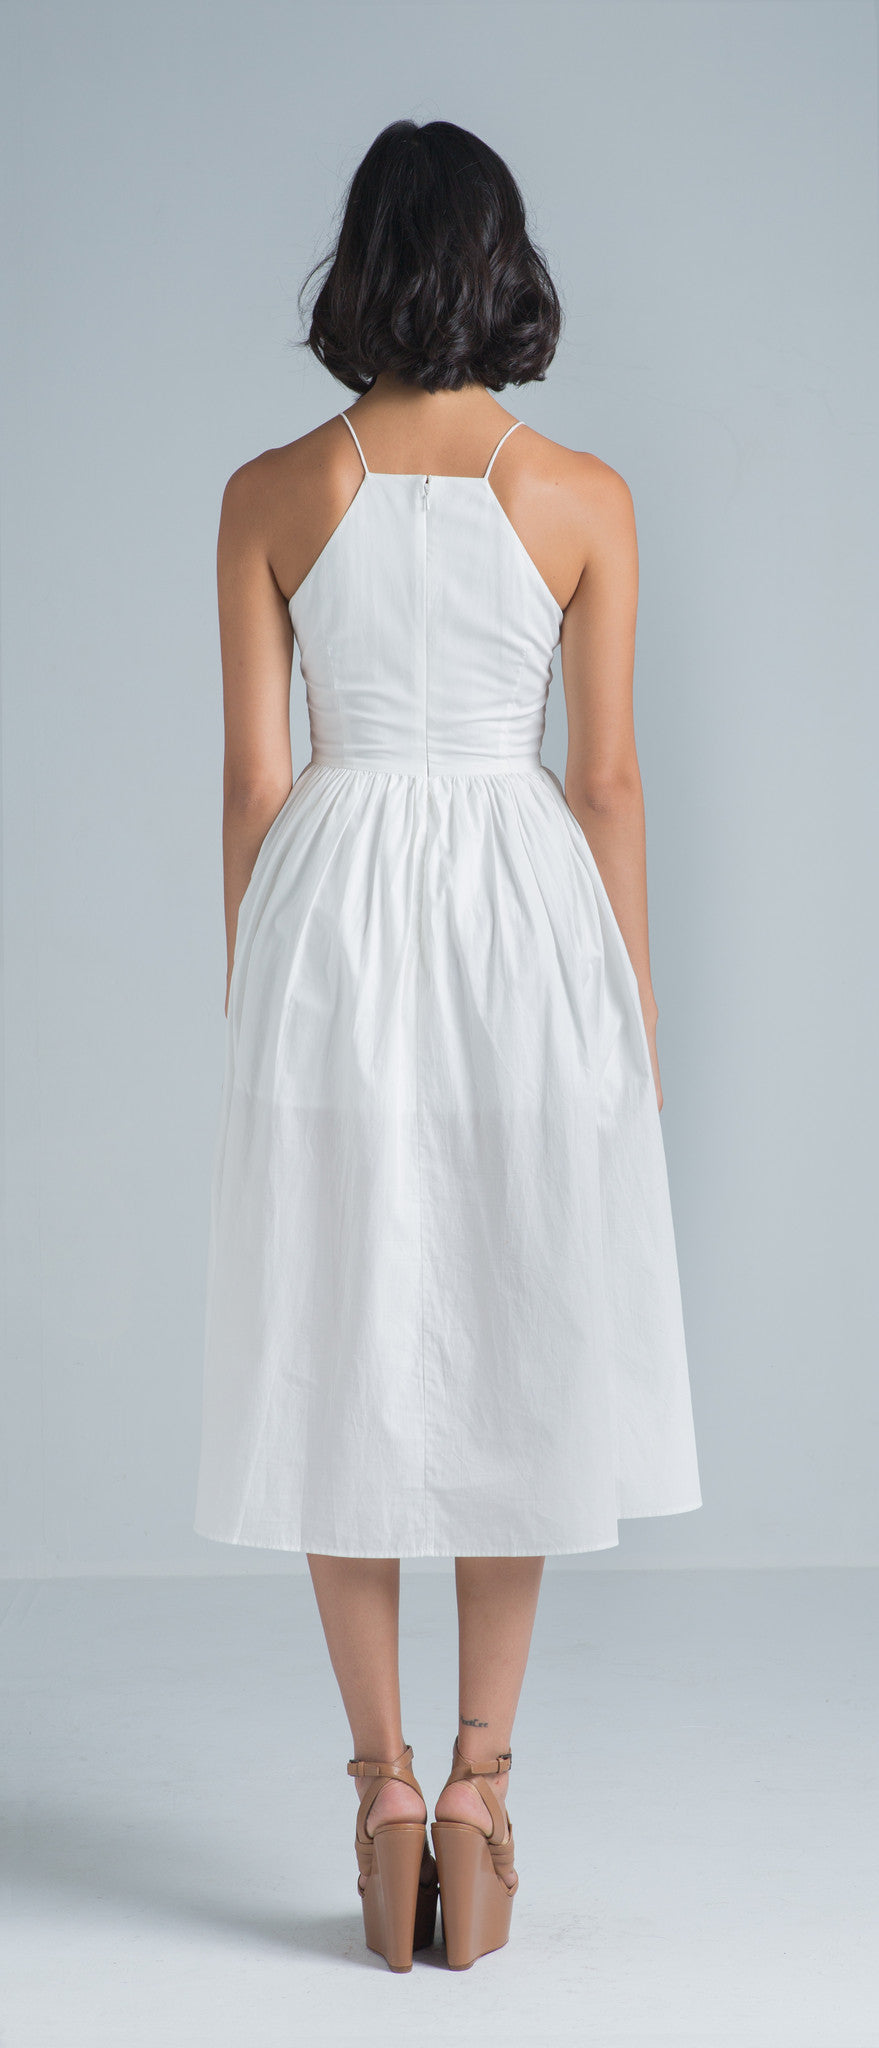 Taylor Cotton Dress (White) - SAU LEE